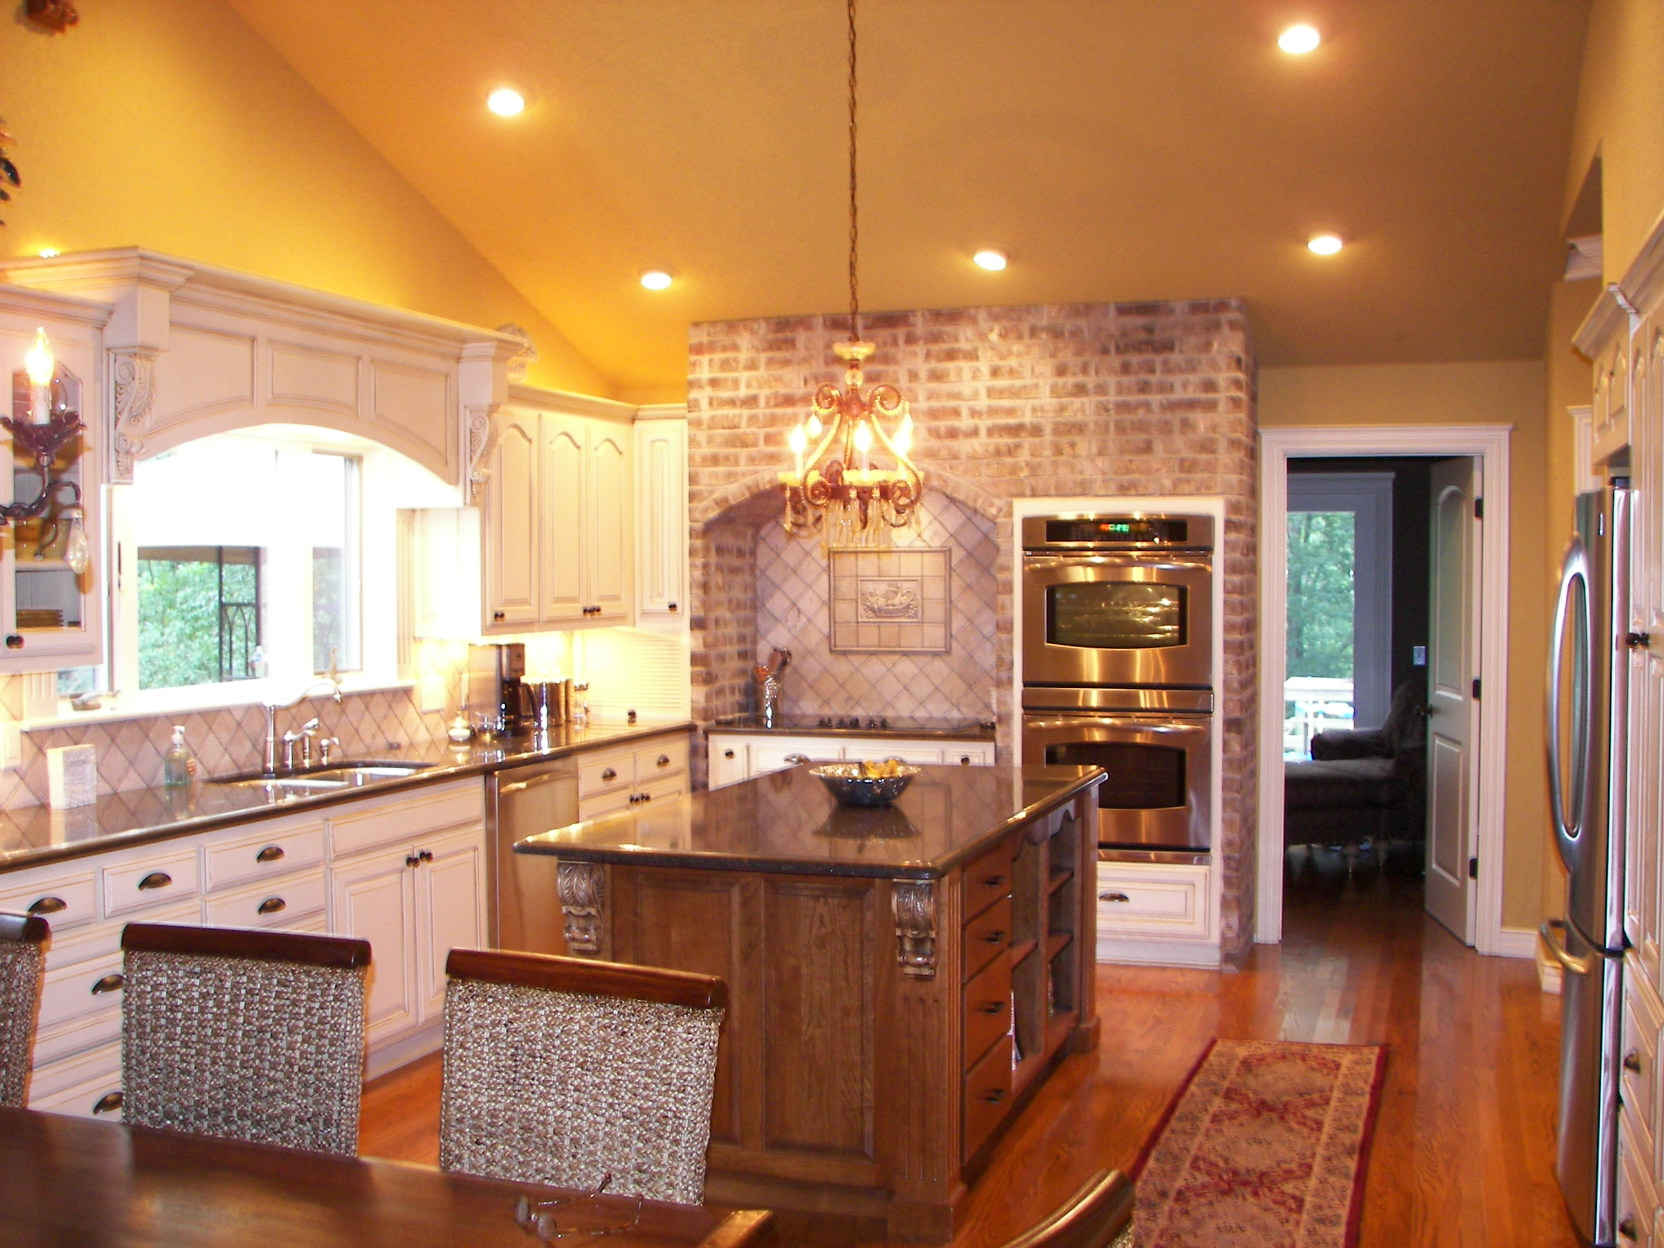 janacek-construction-kitchen-remodel